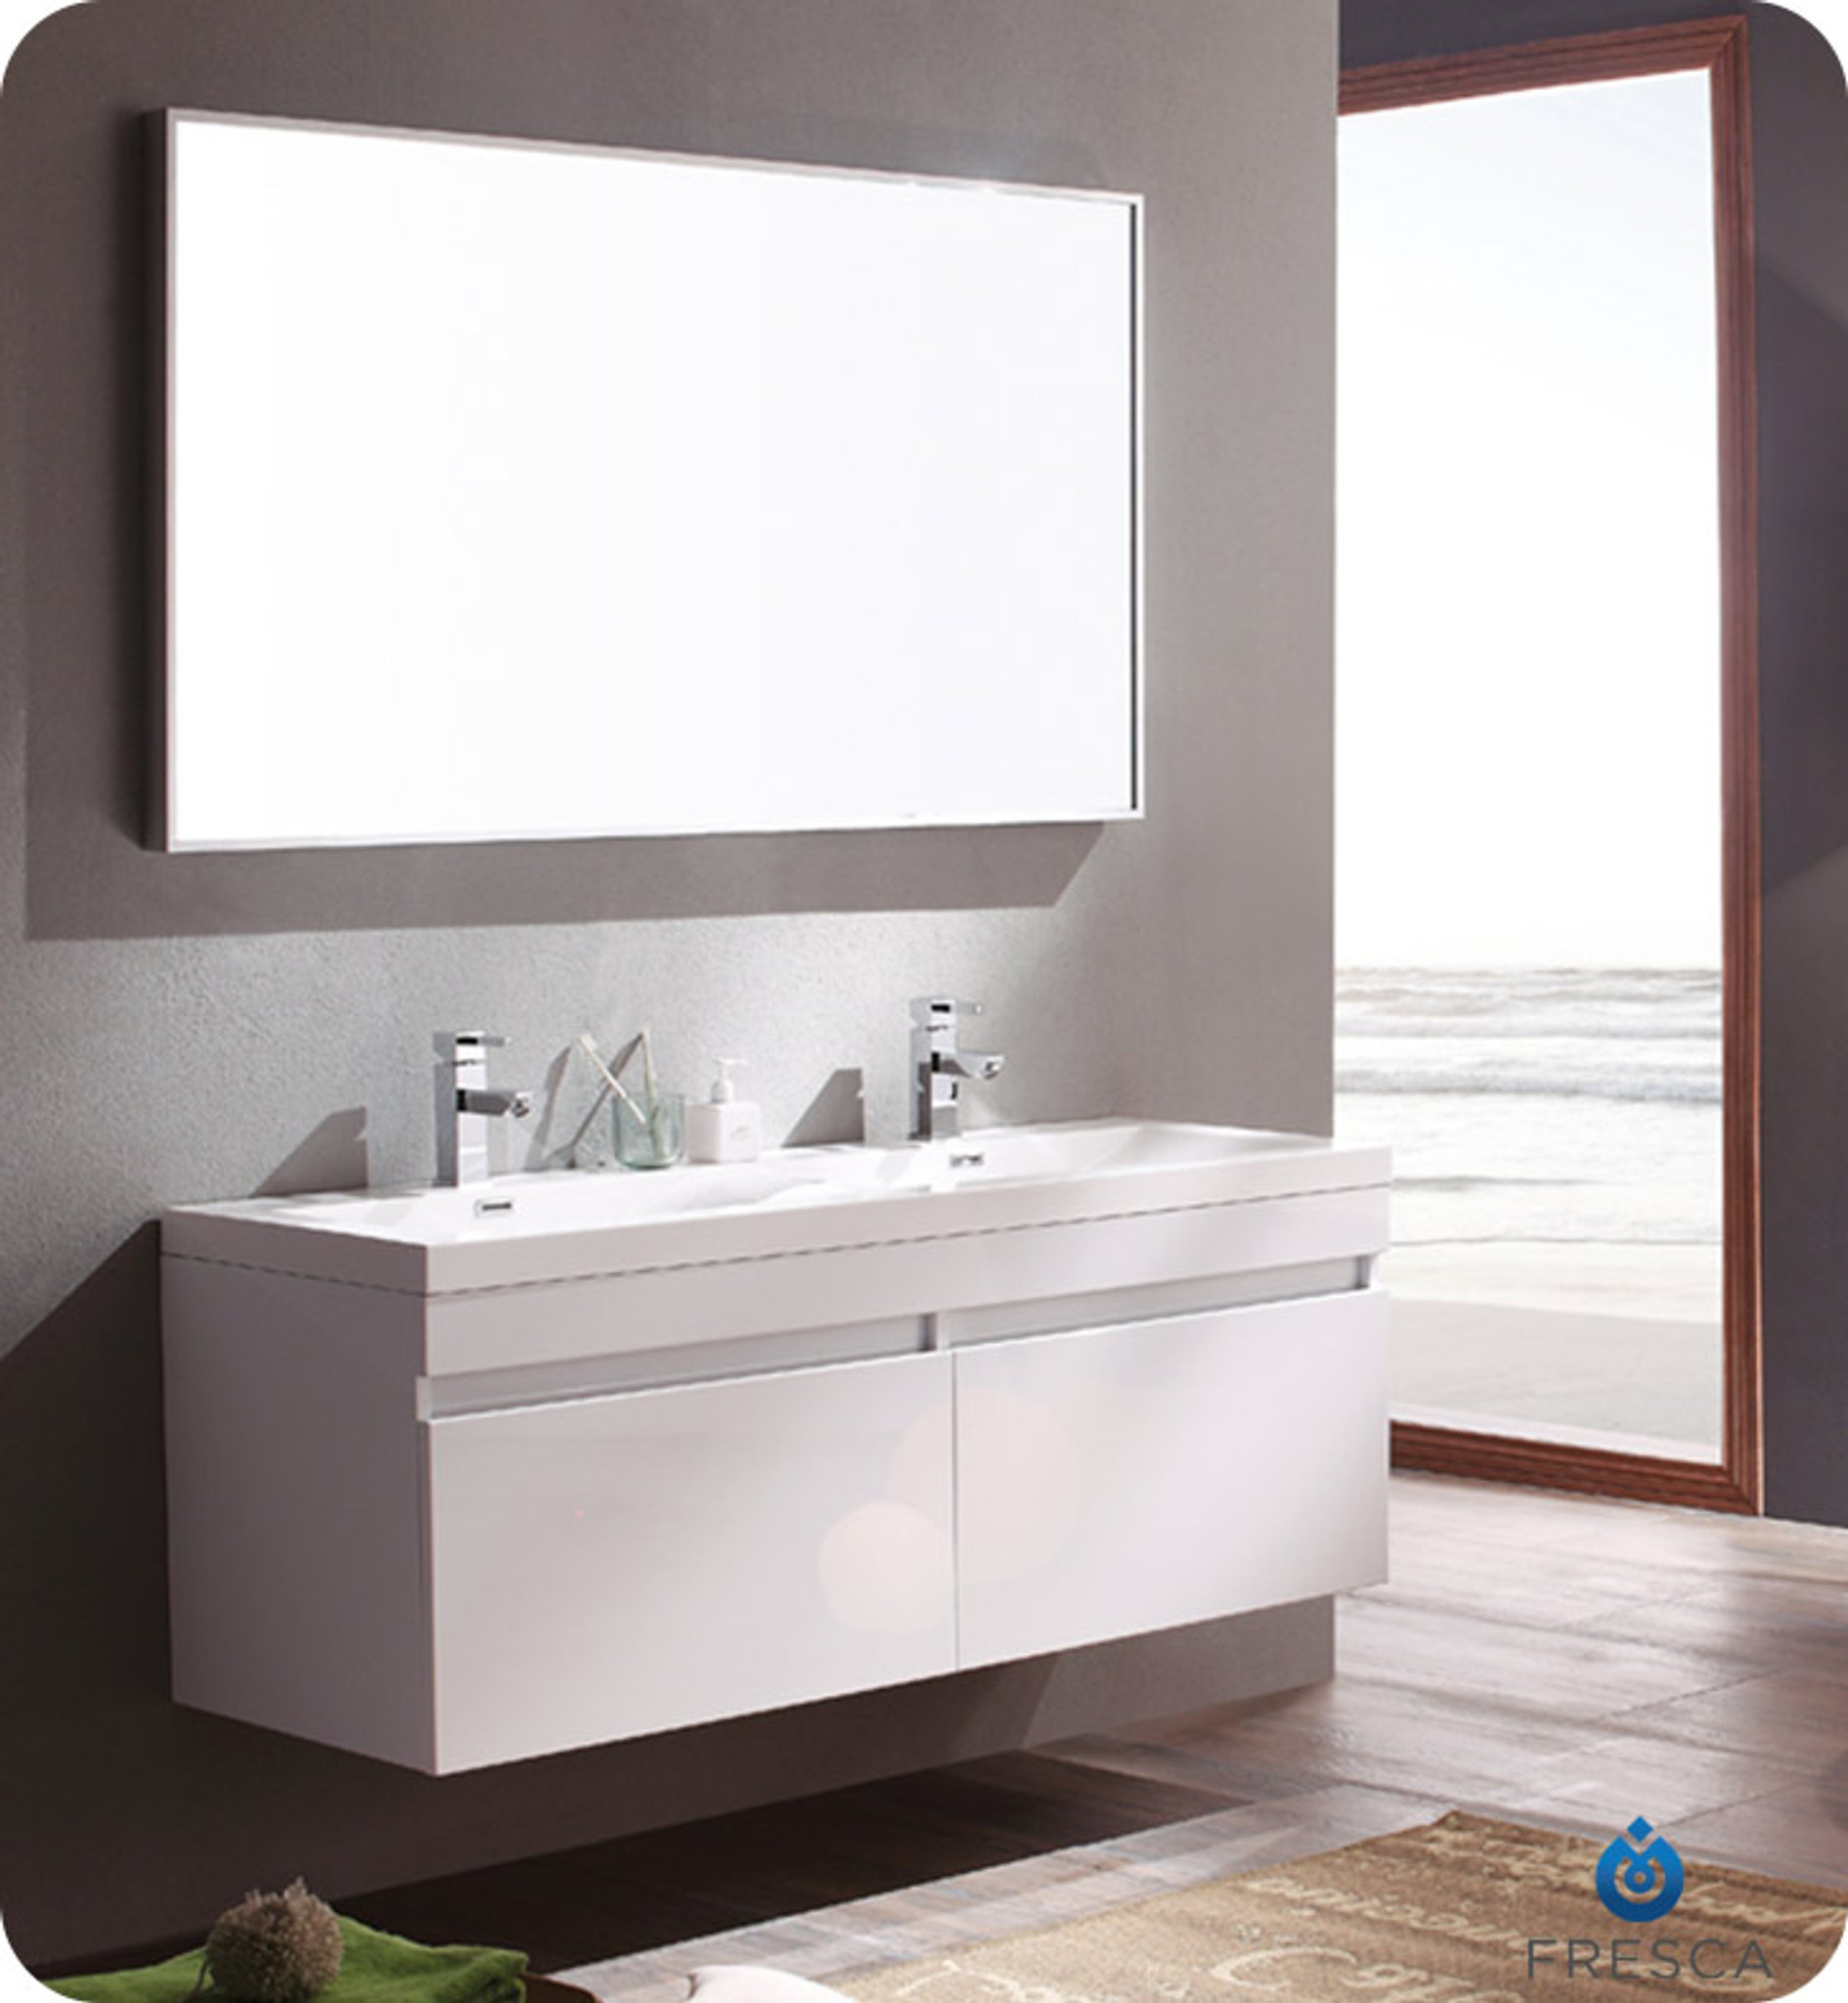 Fvn8040wh Fresca Largo White Modern Bathroom Vanity W